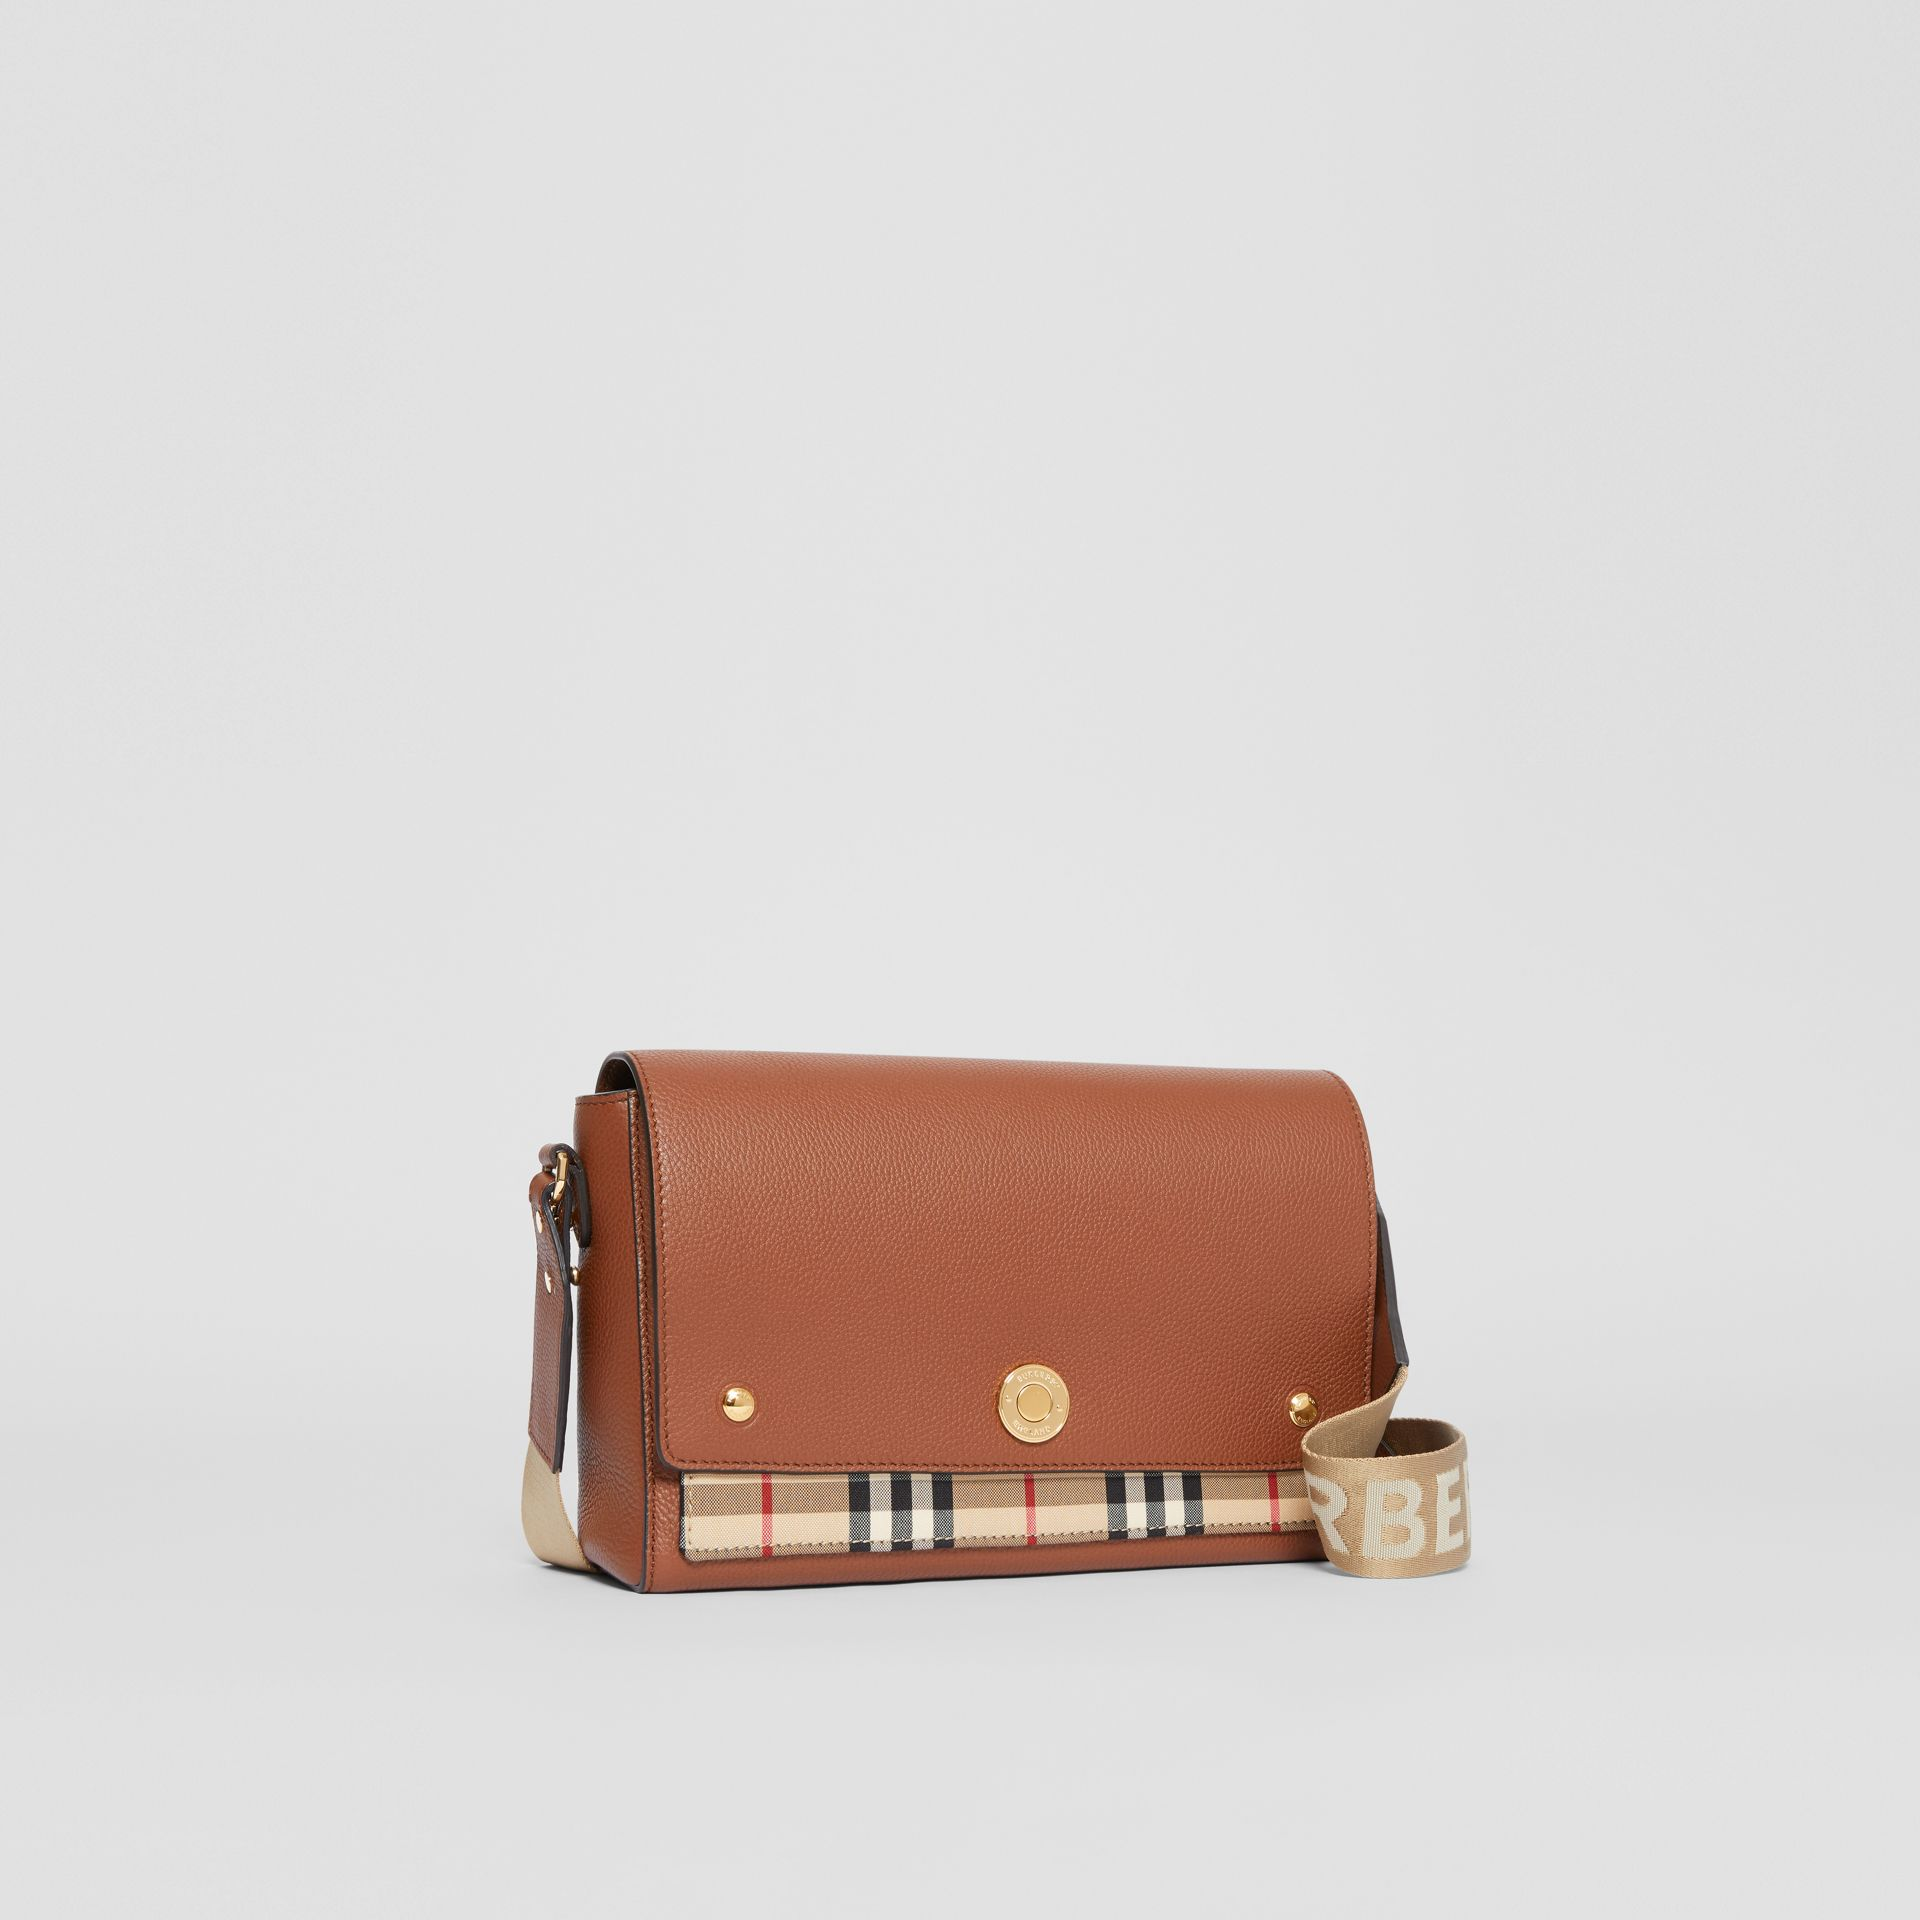 Leather and Vintage Check Note Crossbody Bag in Tan - Women | Burberry - gallery image 6